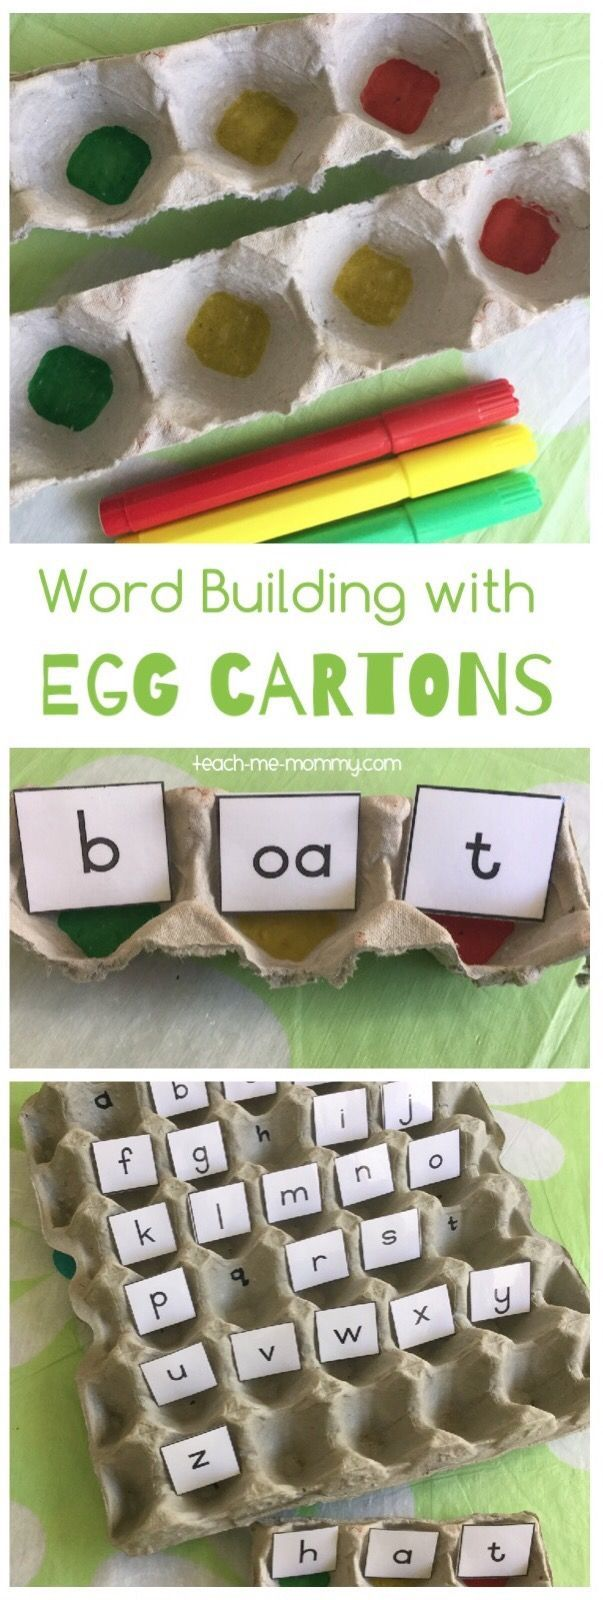 Egg Carton Word Building